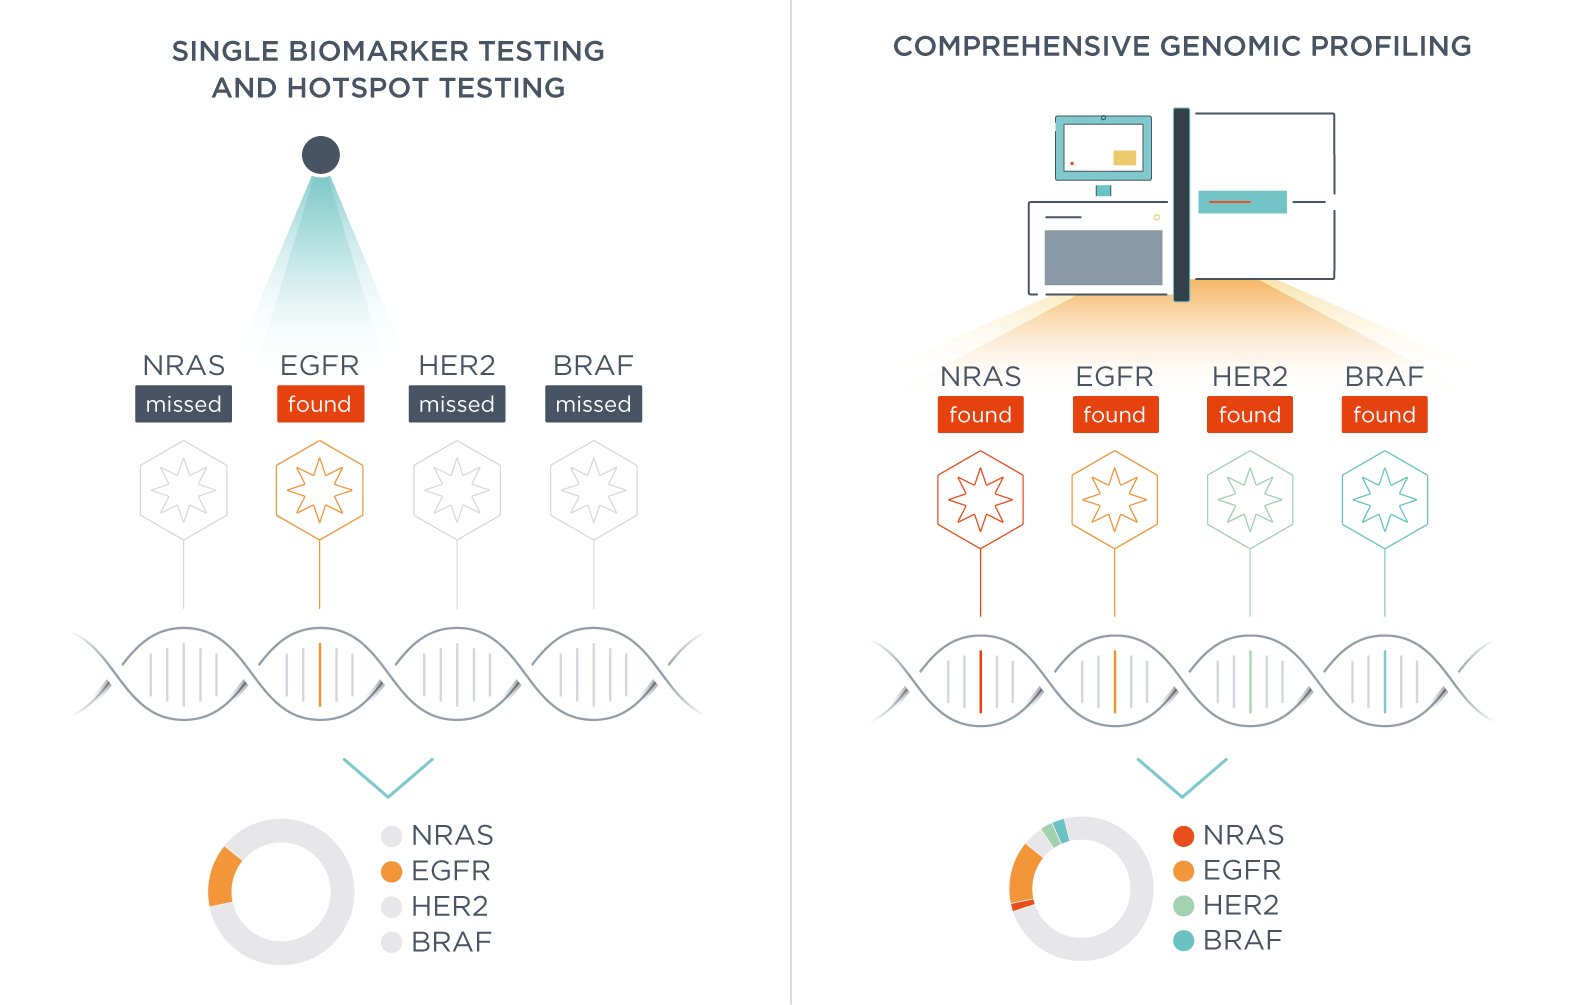 Testing your cancer sample: single biomarker testing, hotspot testing, and comprehensive genomic profiling